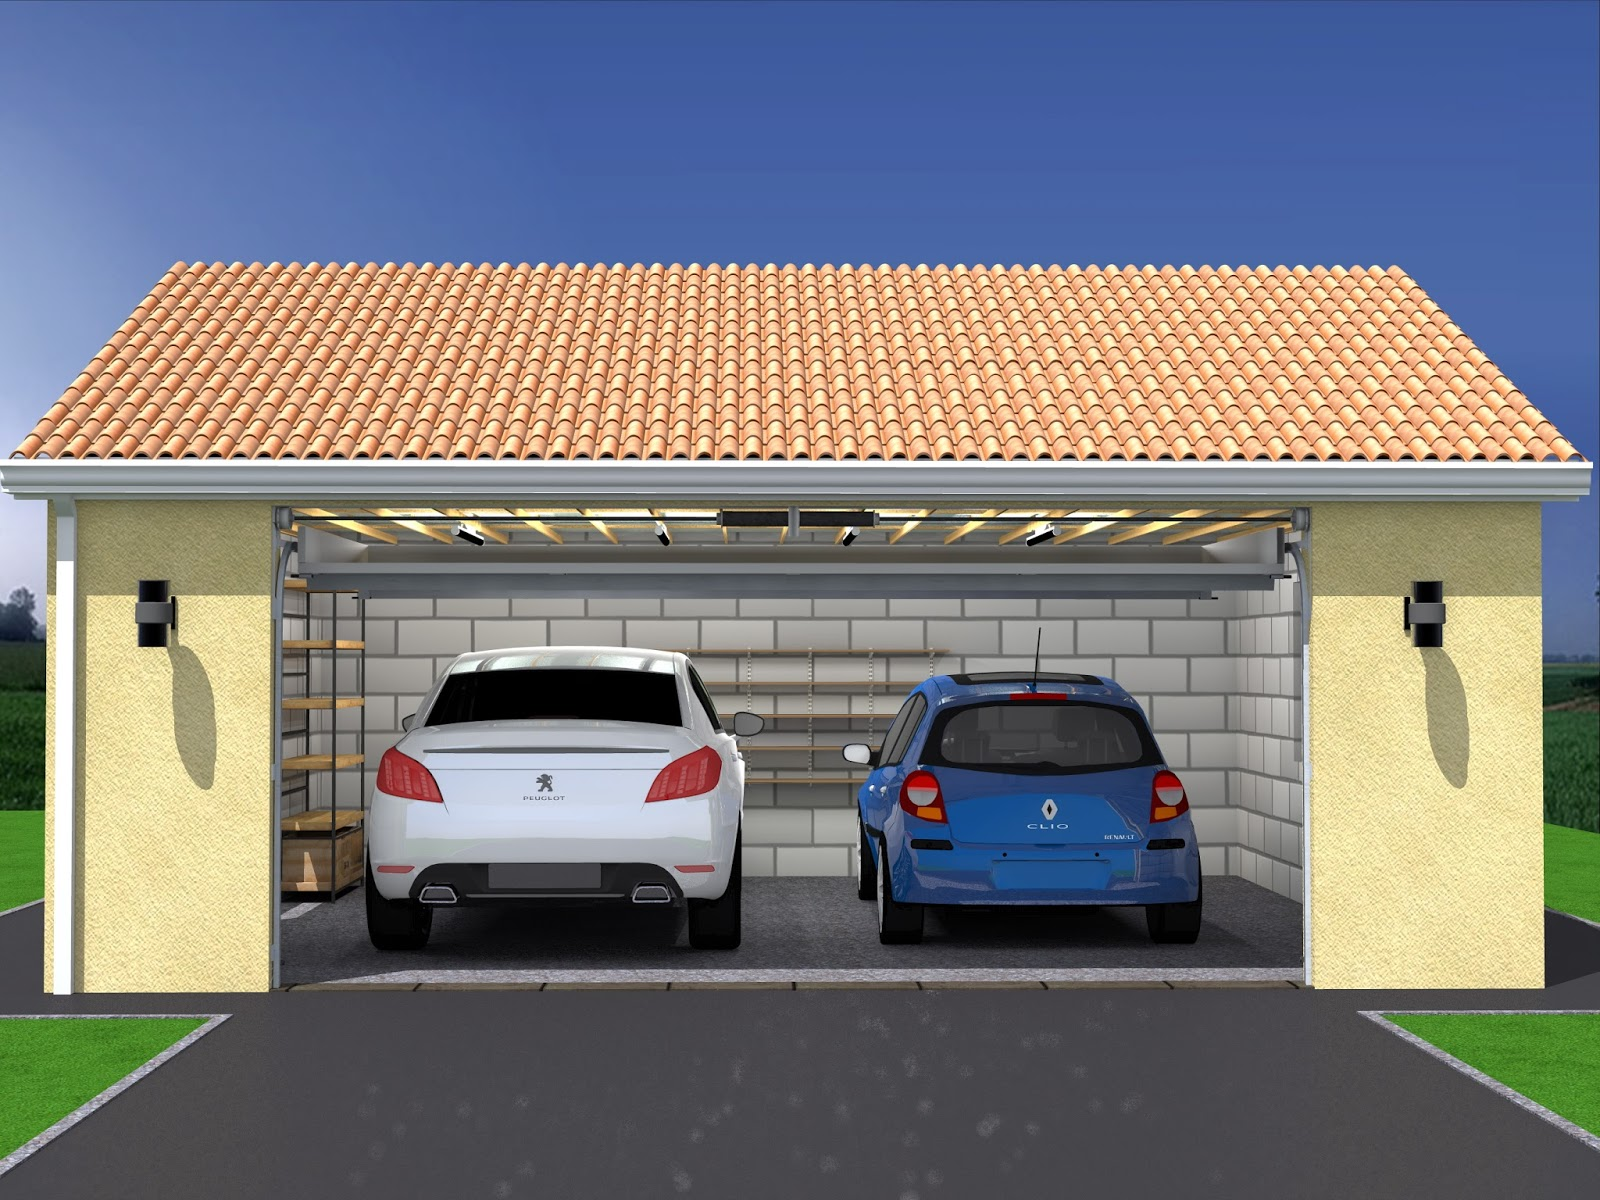 Plan de maison avec garage double for Construction garage parpaing plan